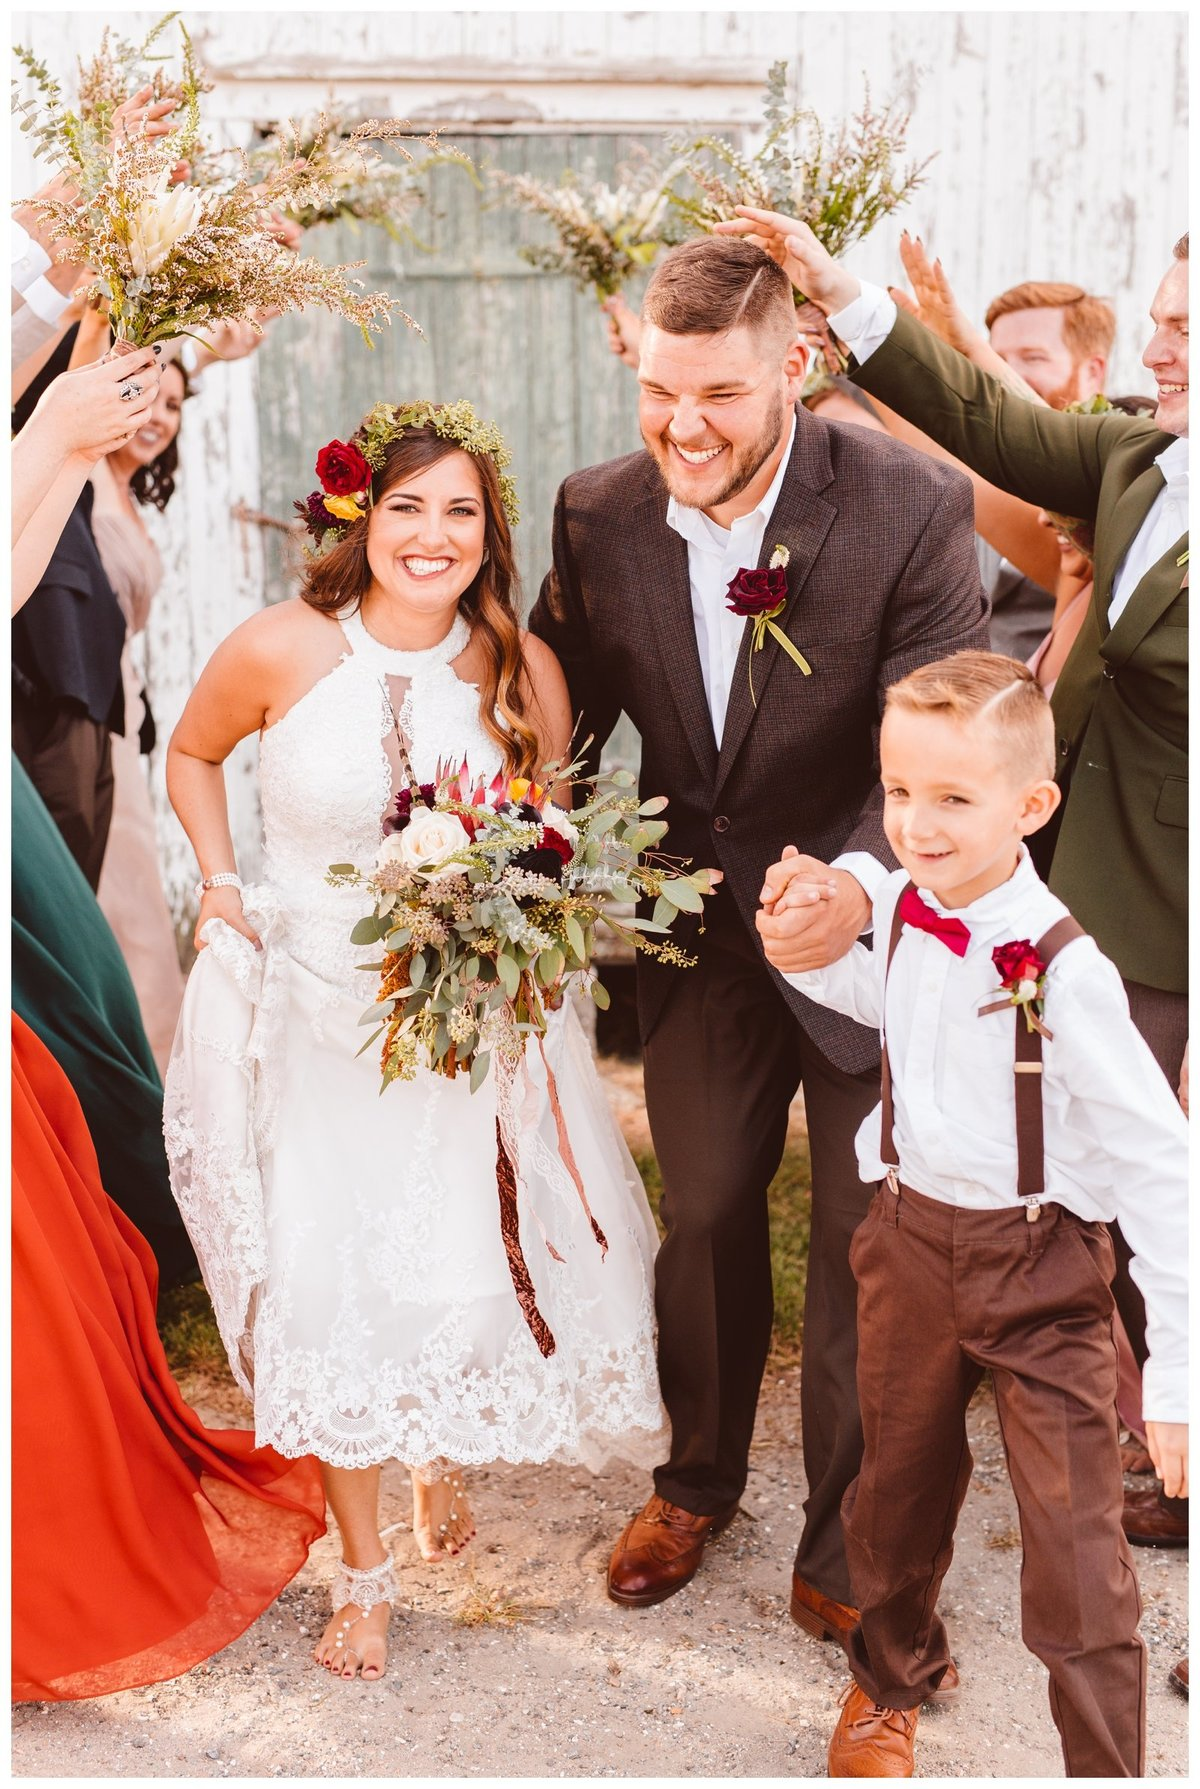 kelley-and-andrews-boho-whimsical-family-farm-wedding-brooke-michelle-photography_1618